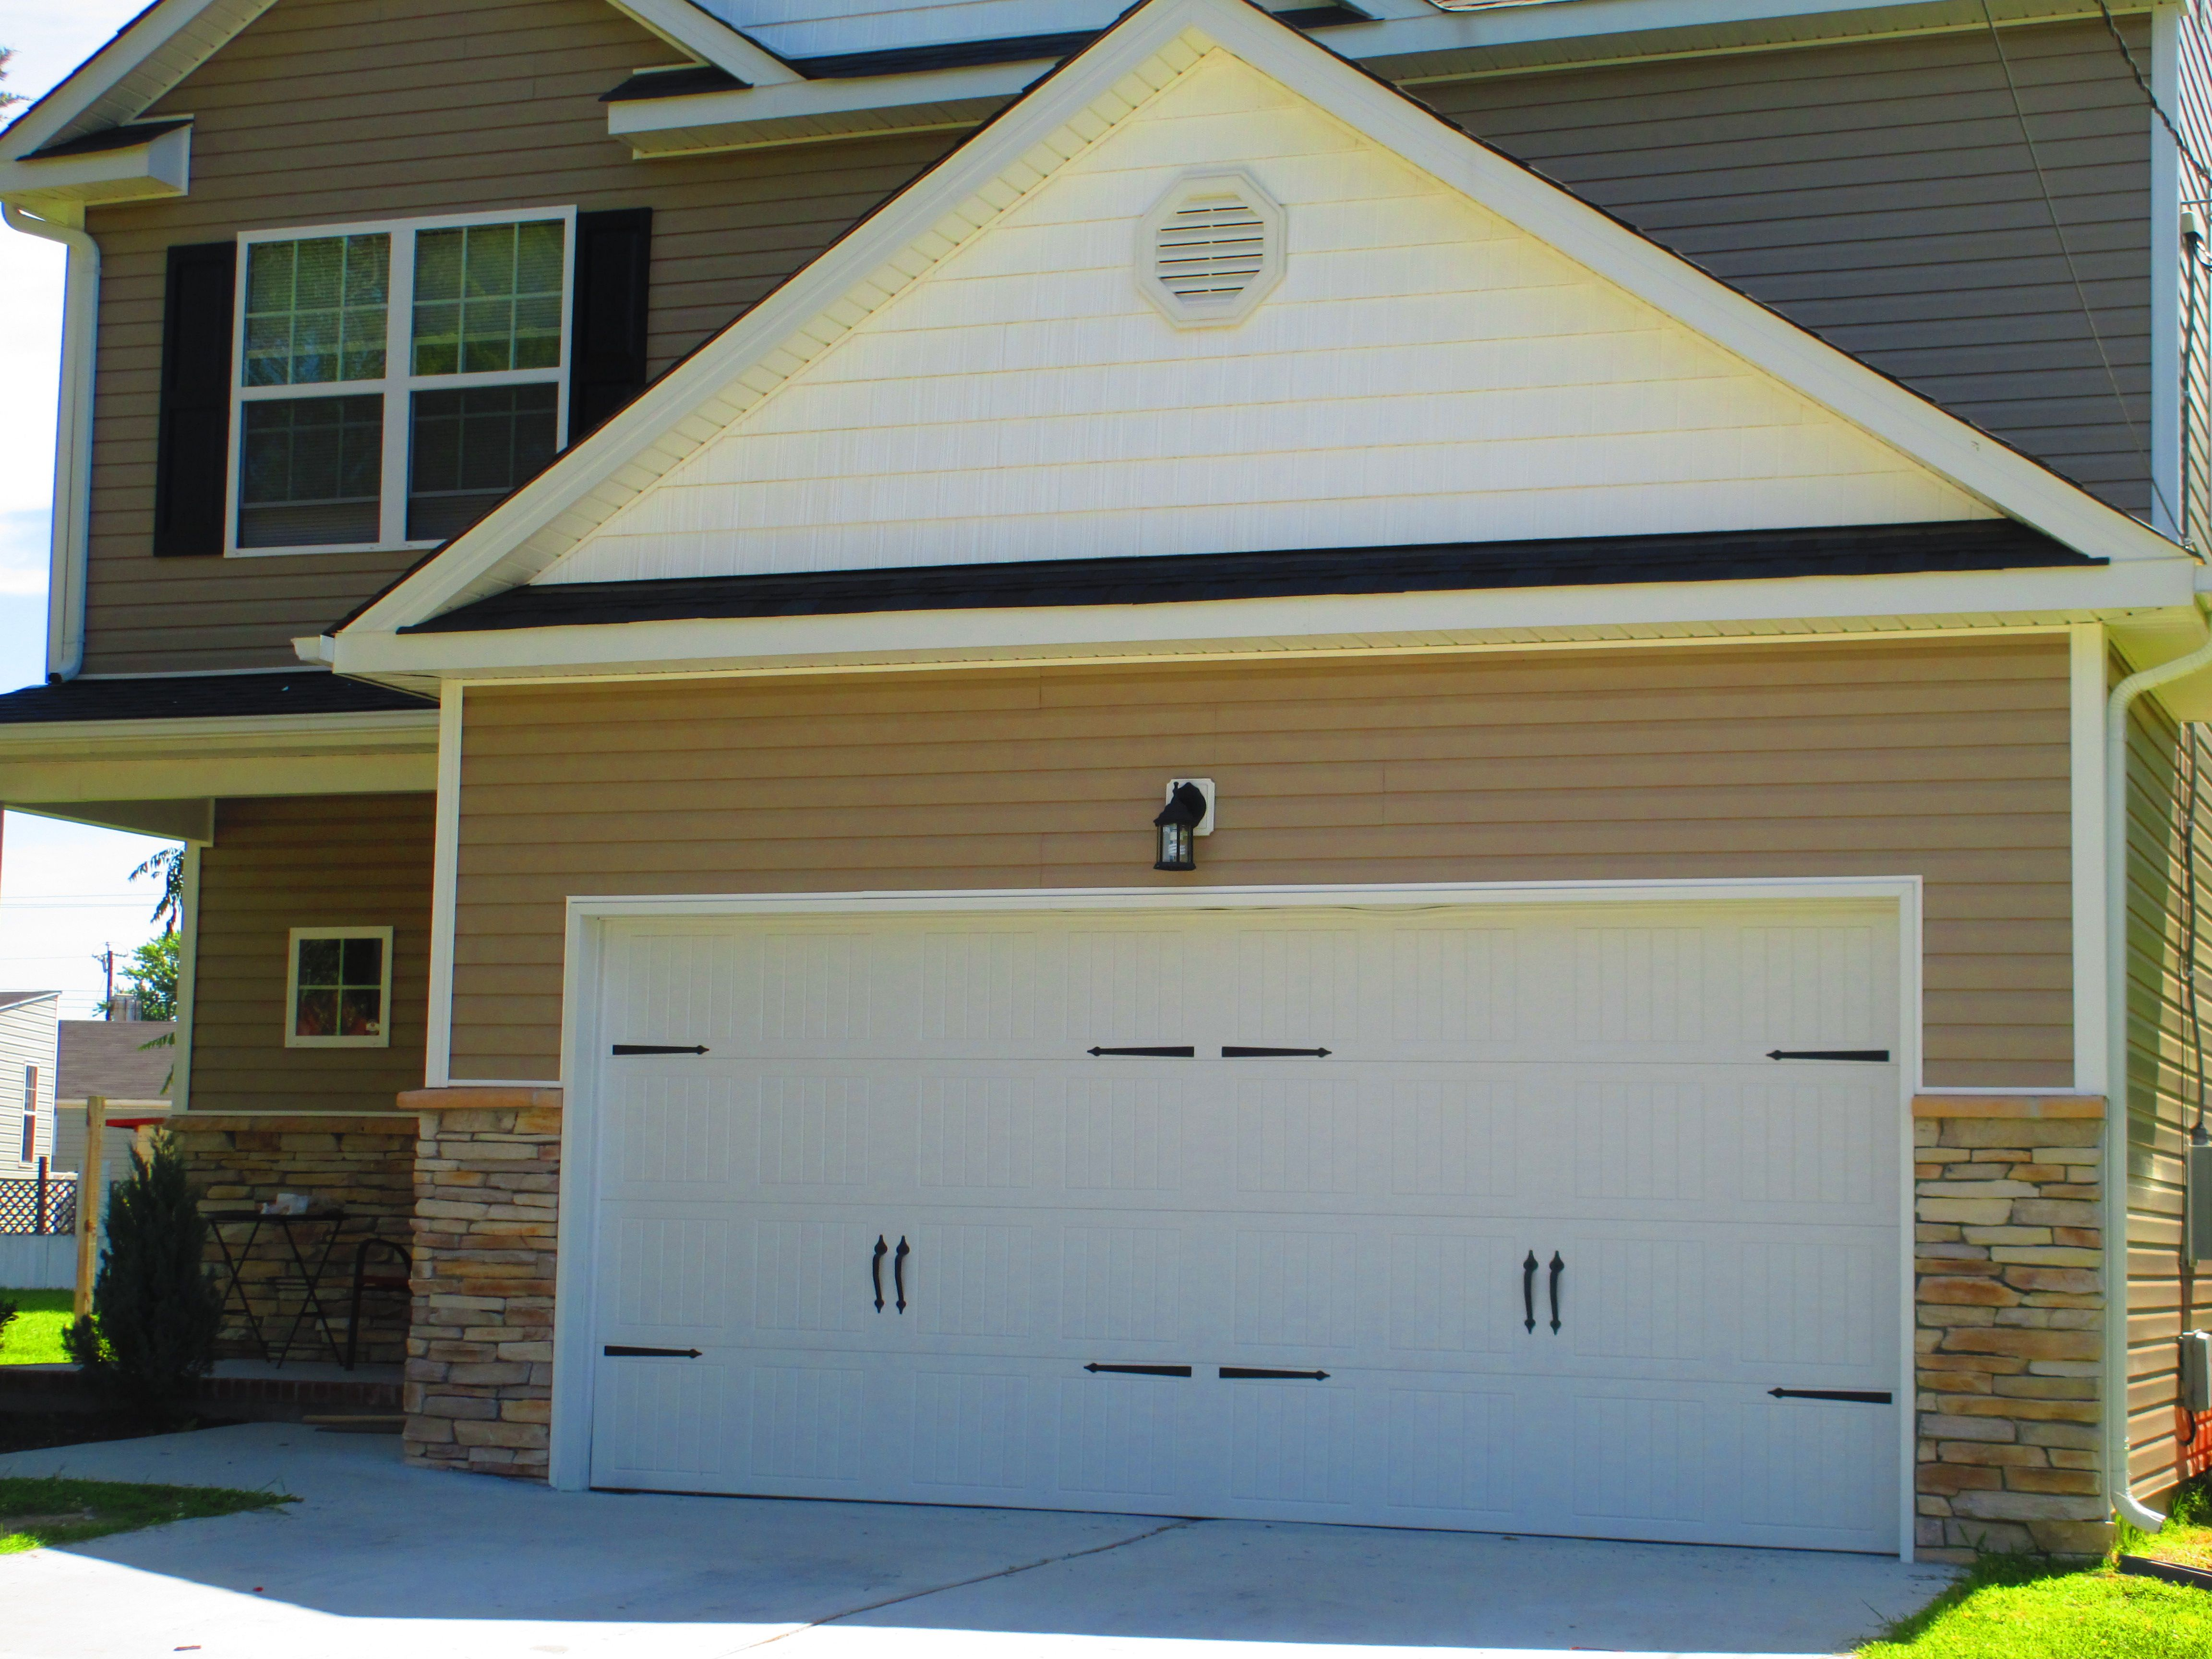 Carriage House Style Garage Door With No Windows Garage Doors Garage Door Design Metal Garage Doors